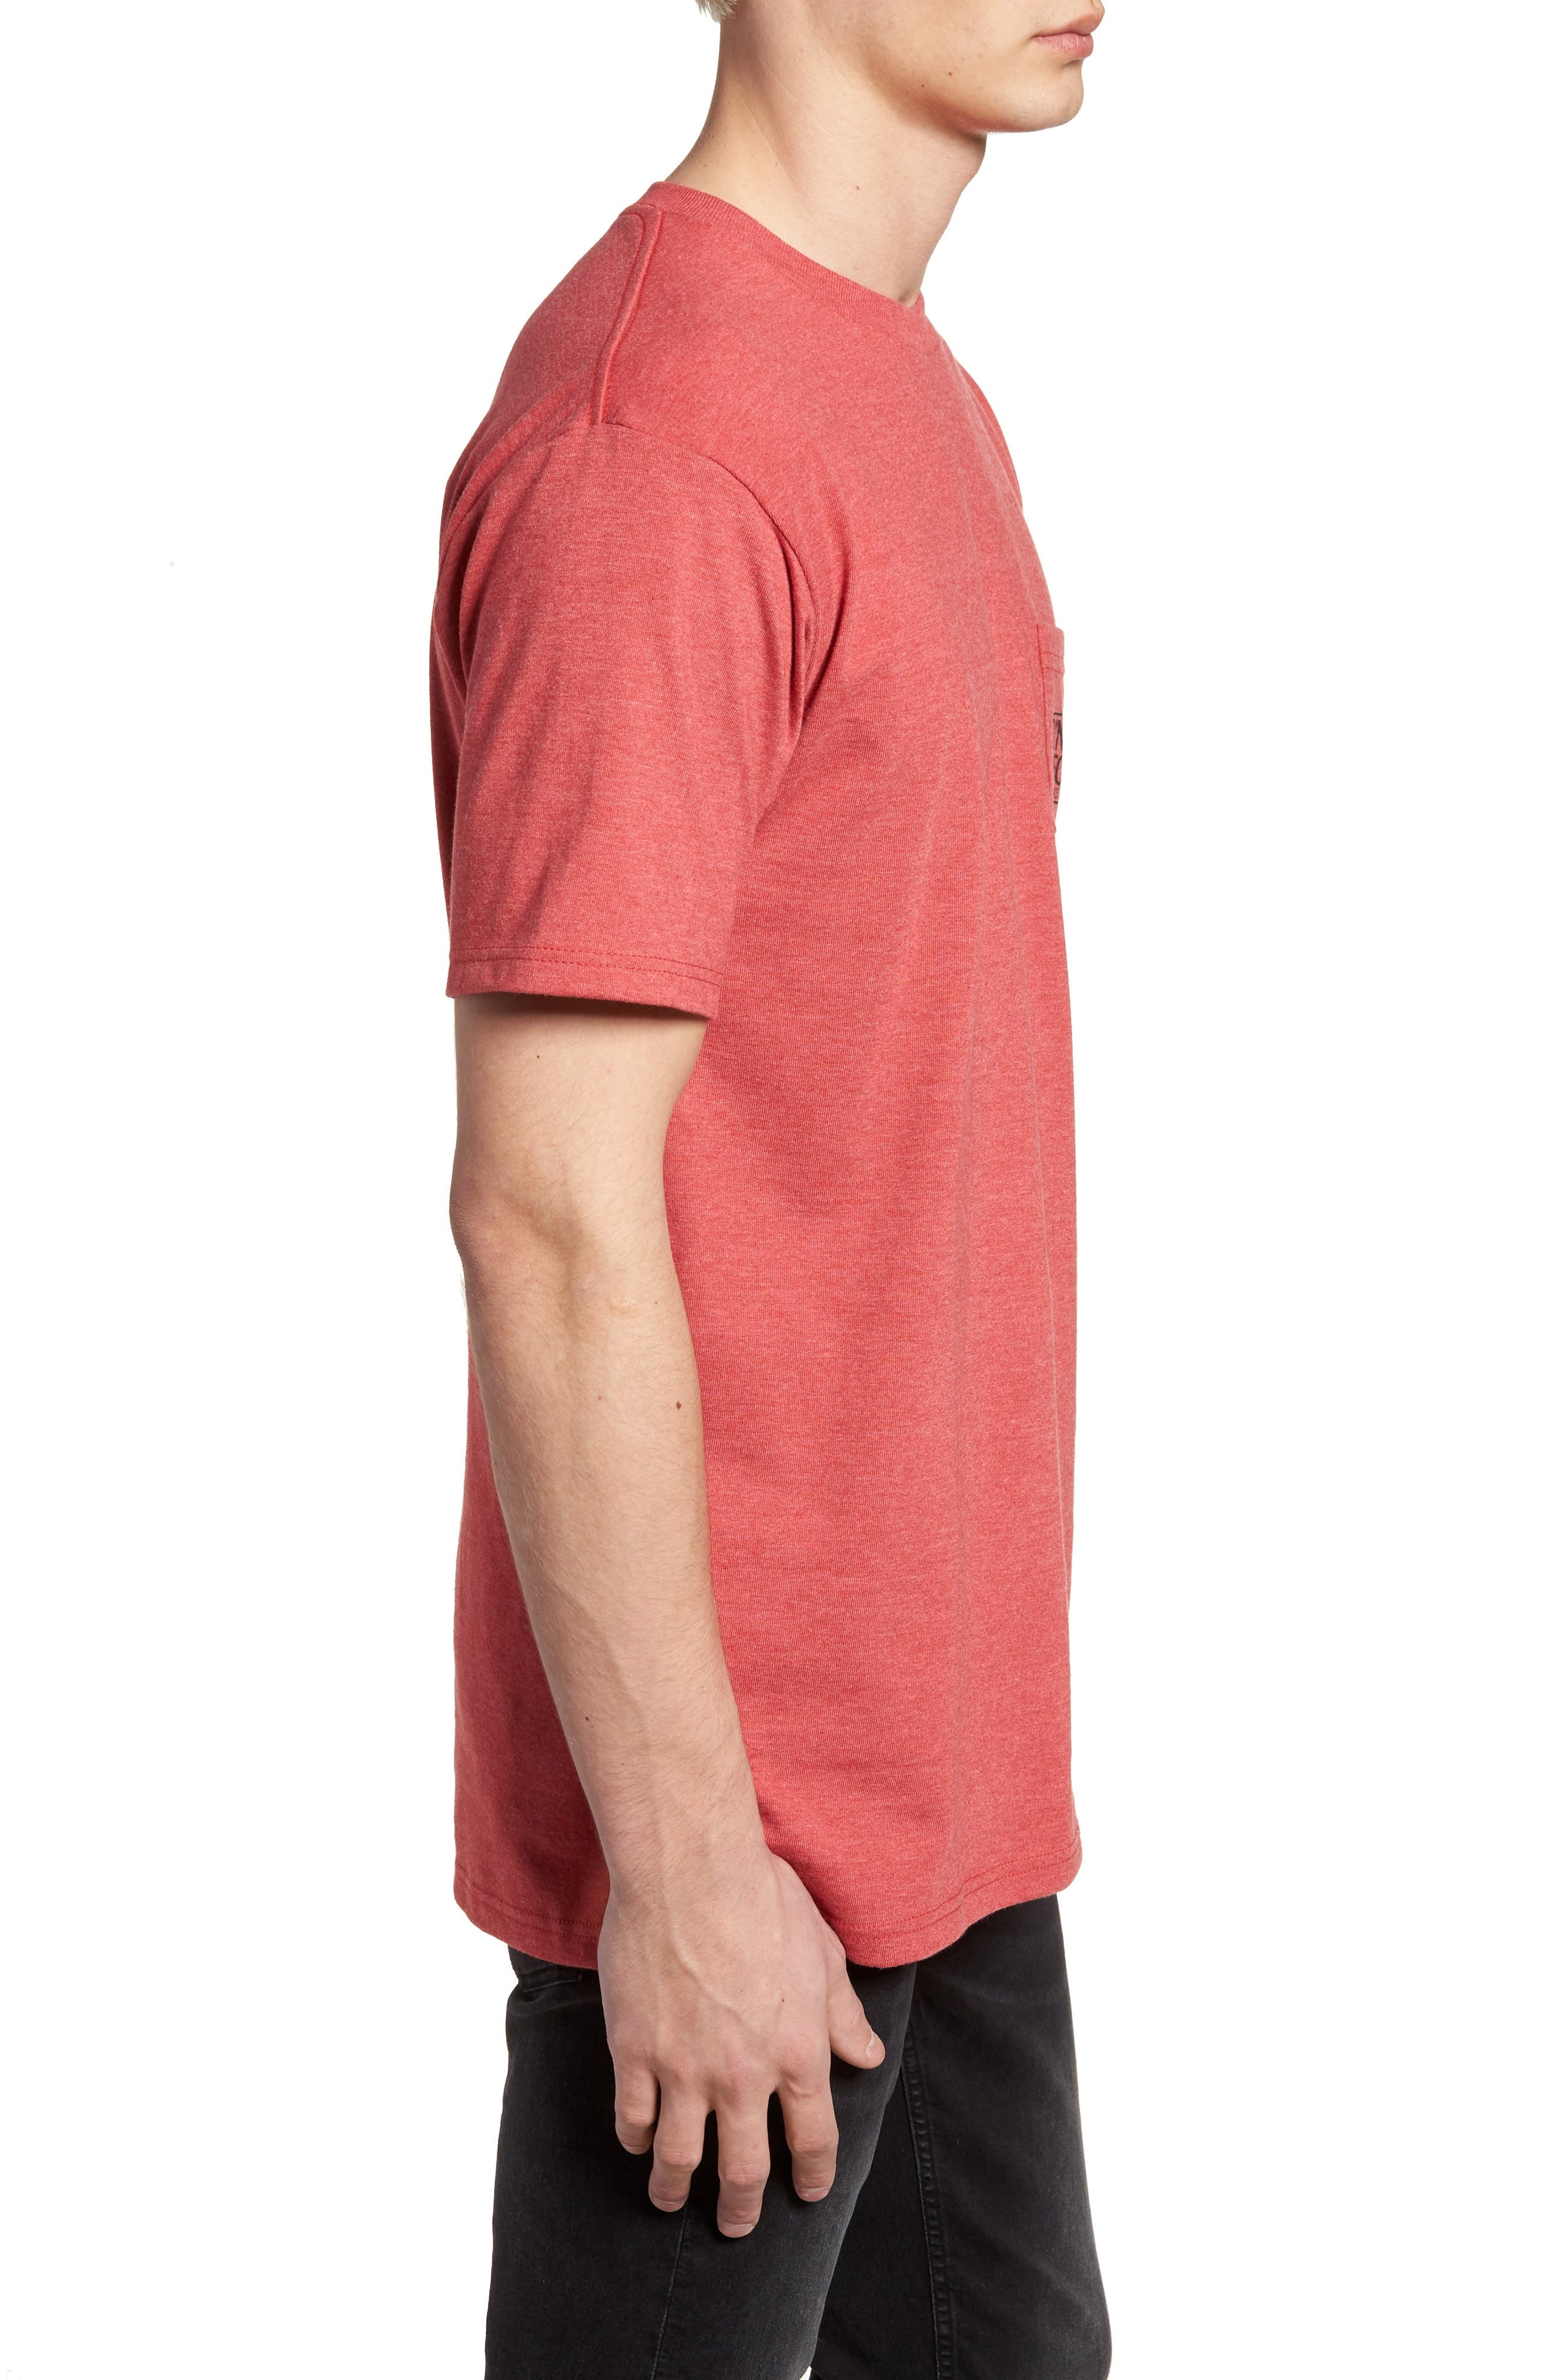 MFG Graphic T-Shirt,                             Alternate thumbnail 3, color,                             Red Heather